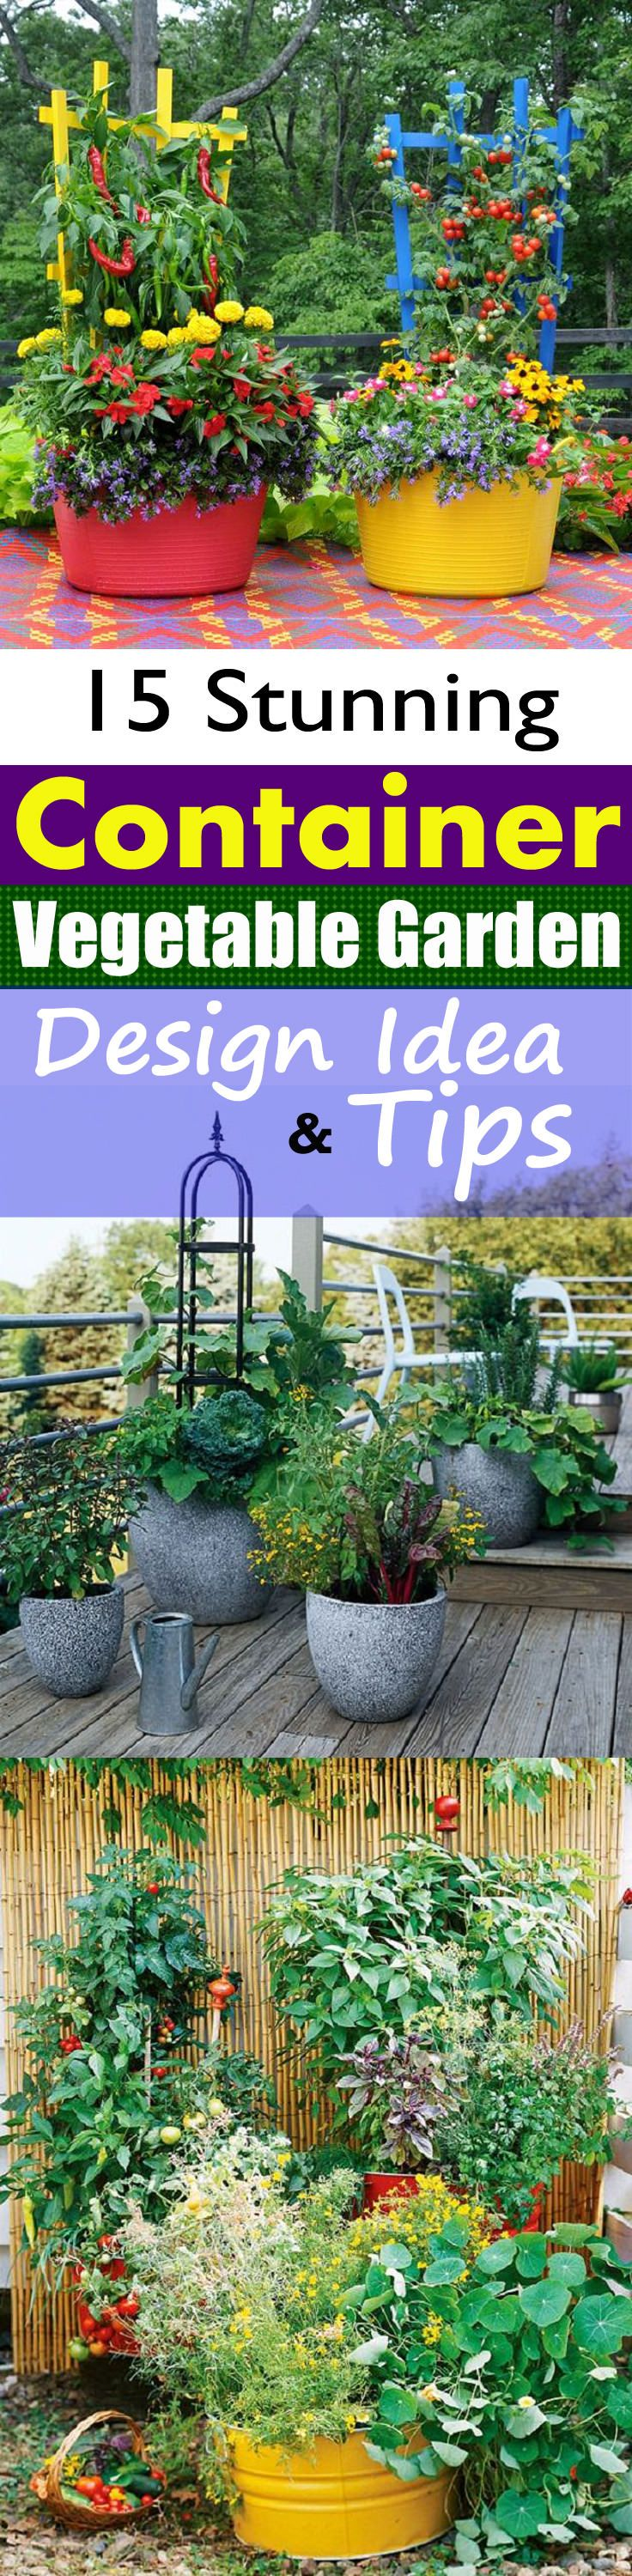 15 Stunning Container Vegetable Garden Design Ideas & Tips ...